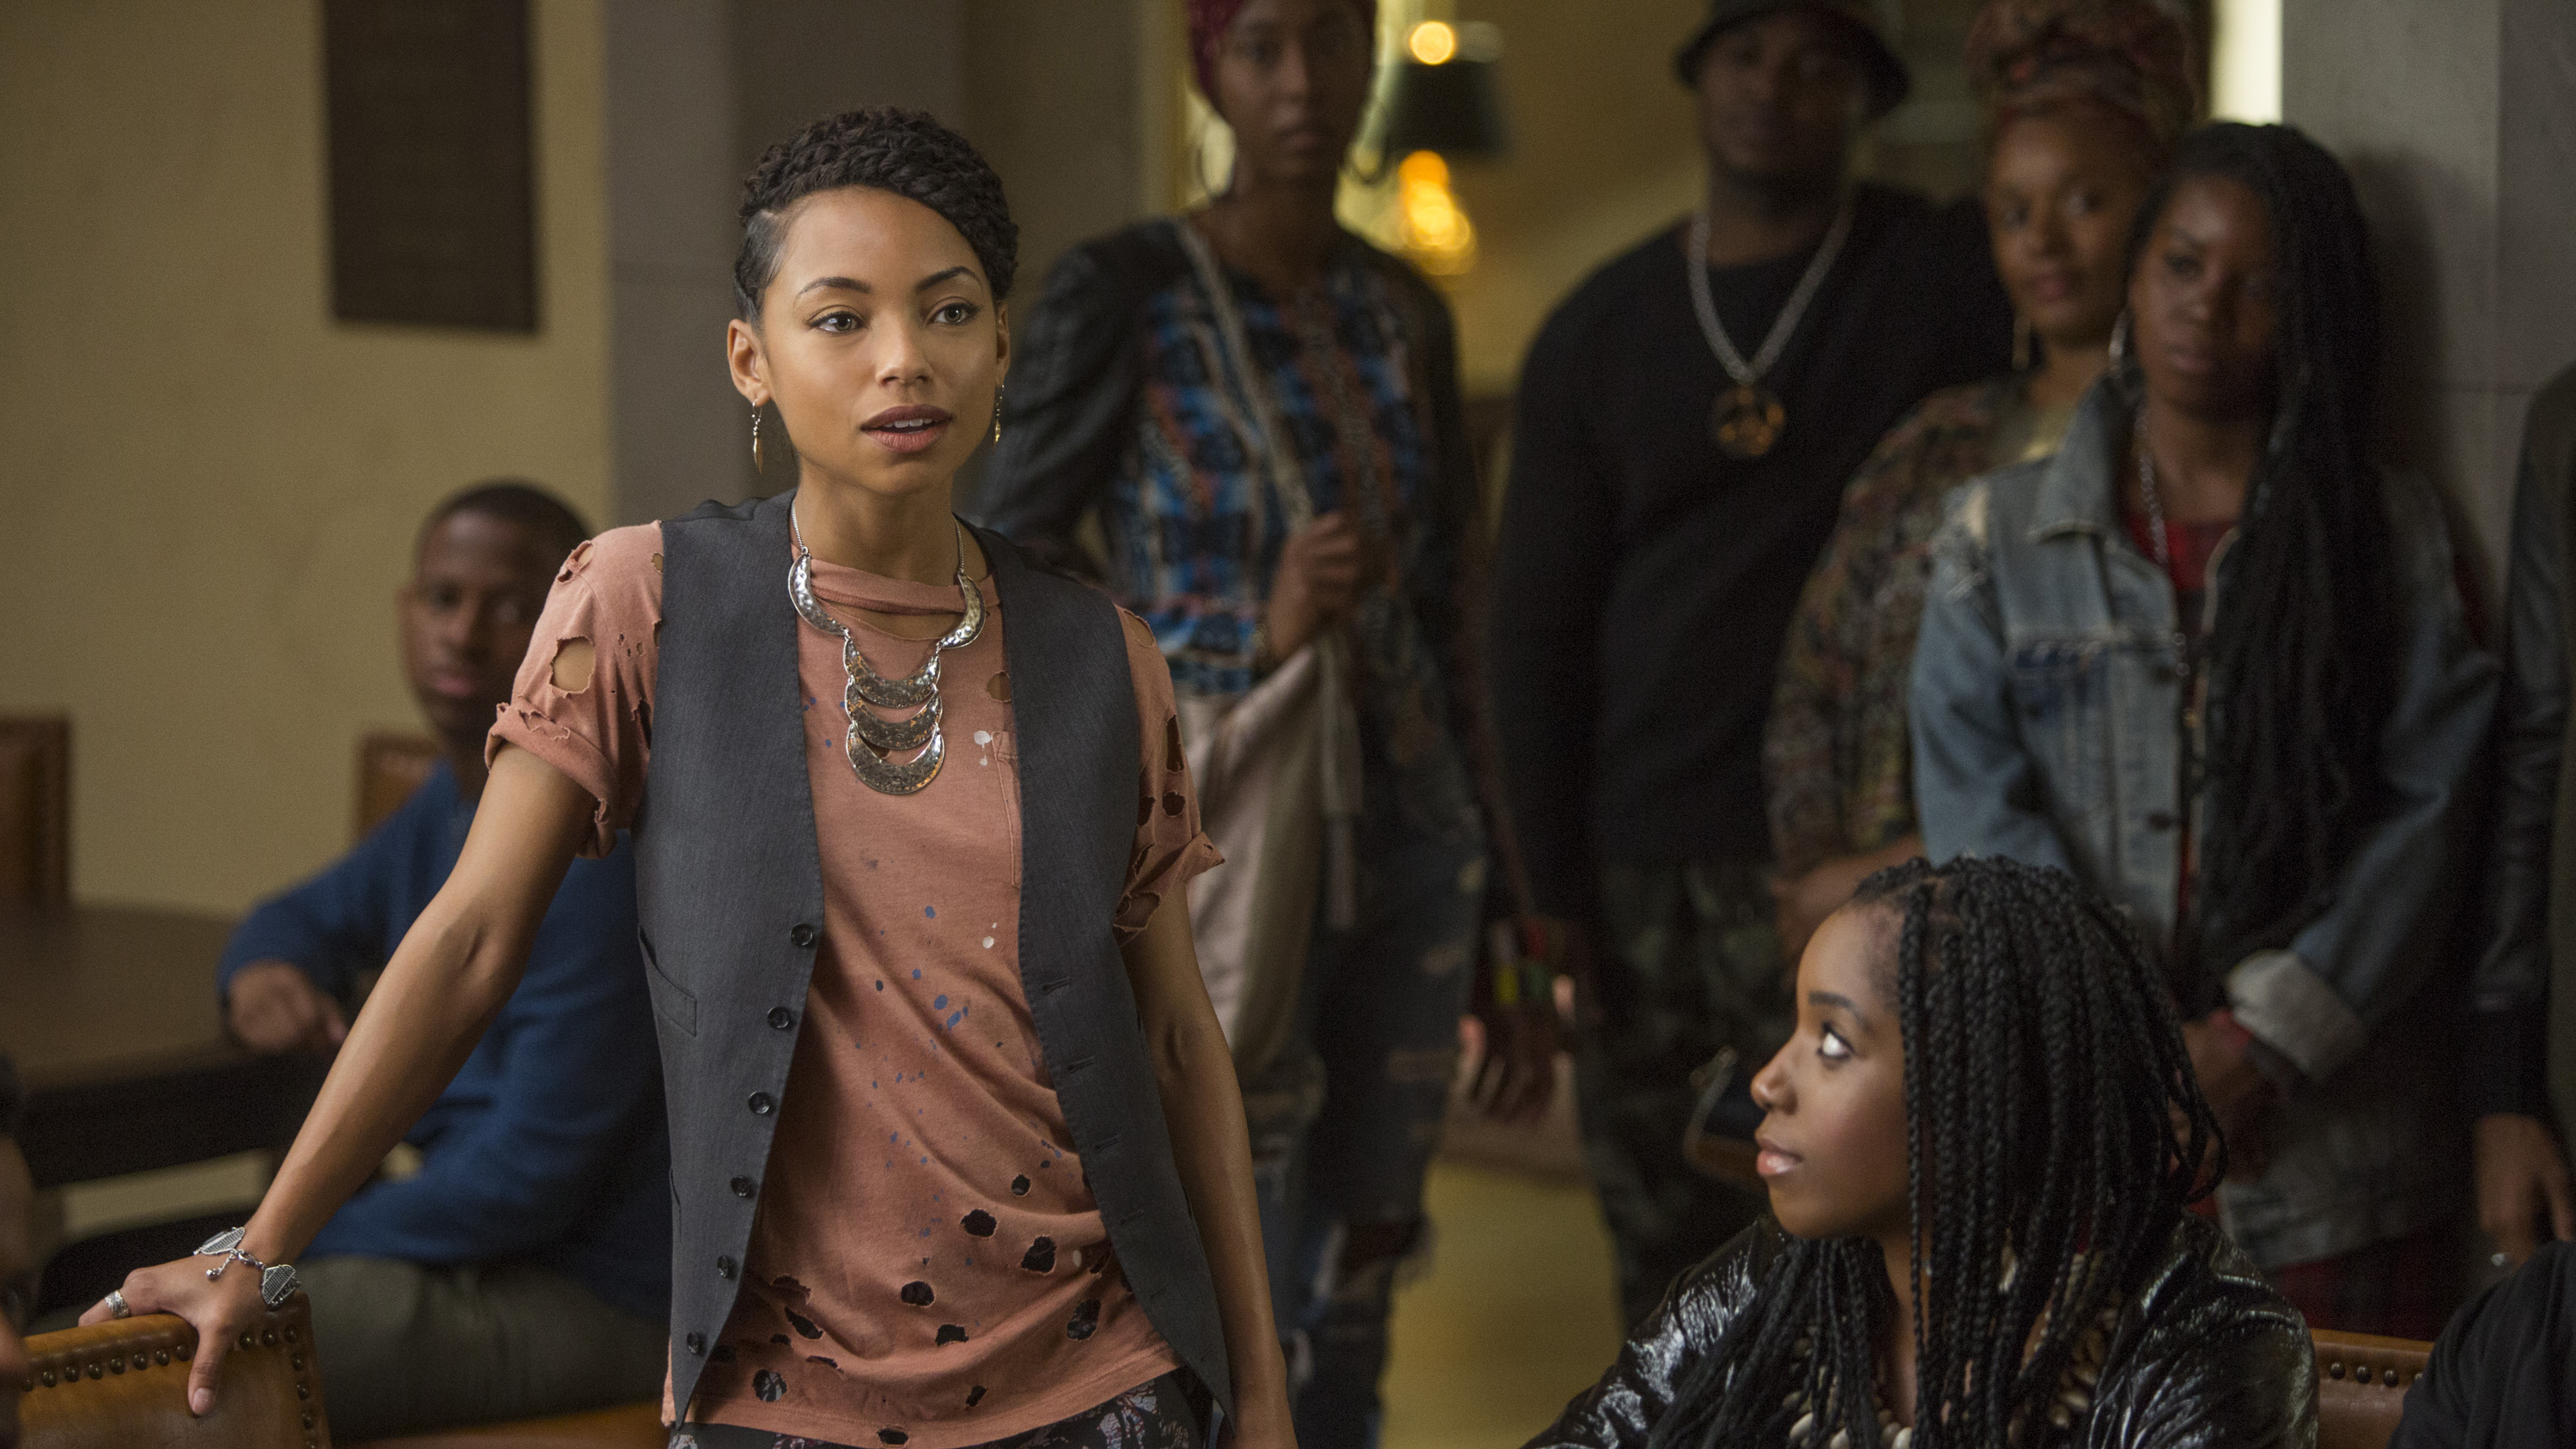 This Time 'Dear White People' Is Not So Much About Them